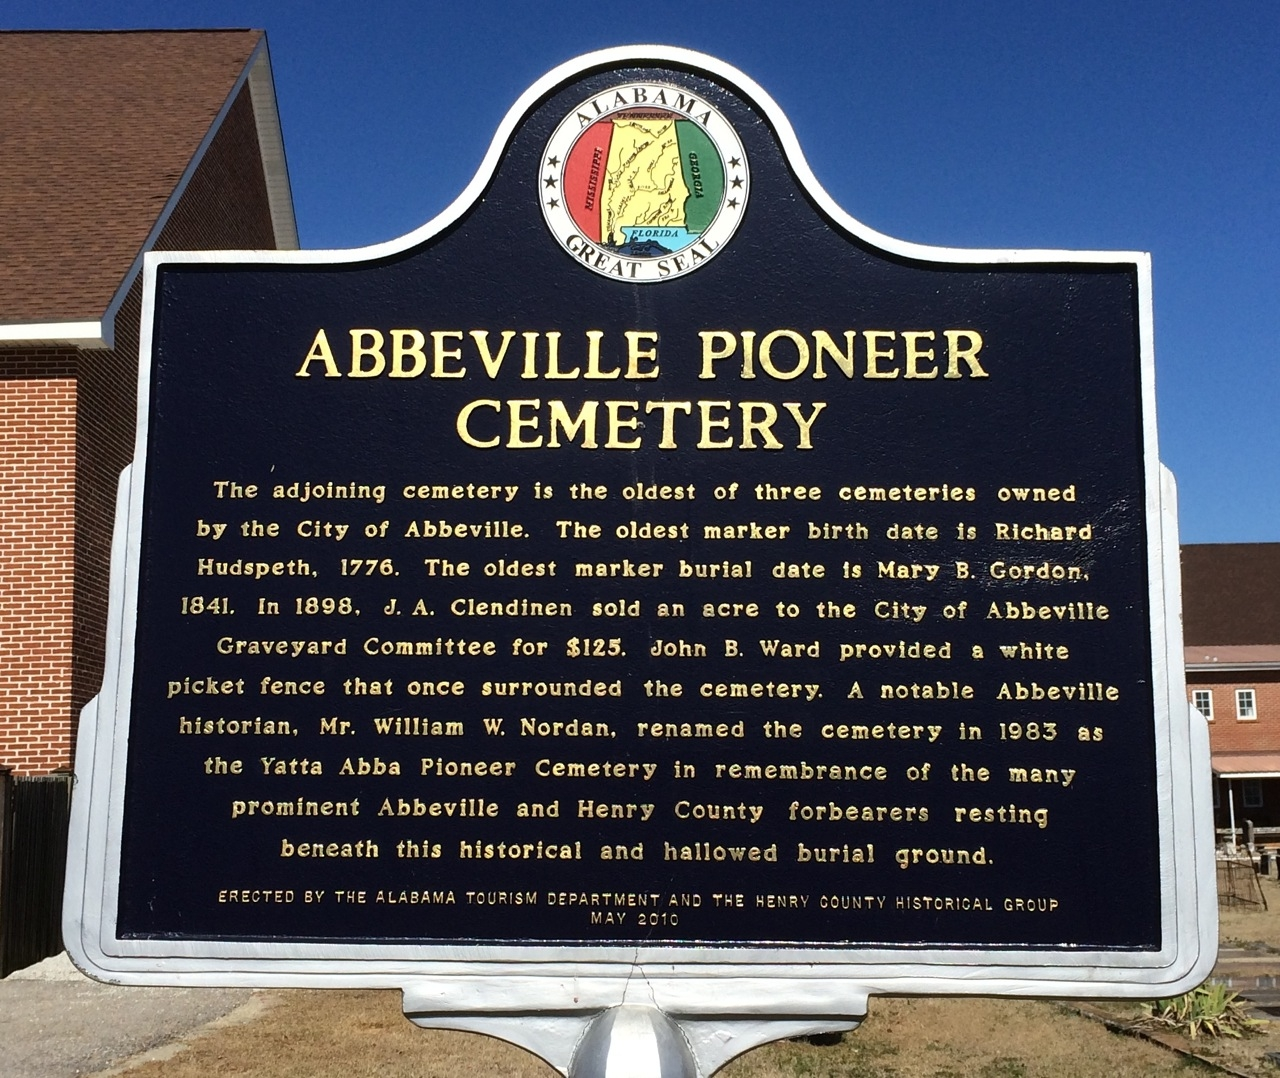 Abbeville Pioneer Cemetery Marker